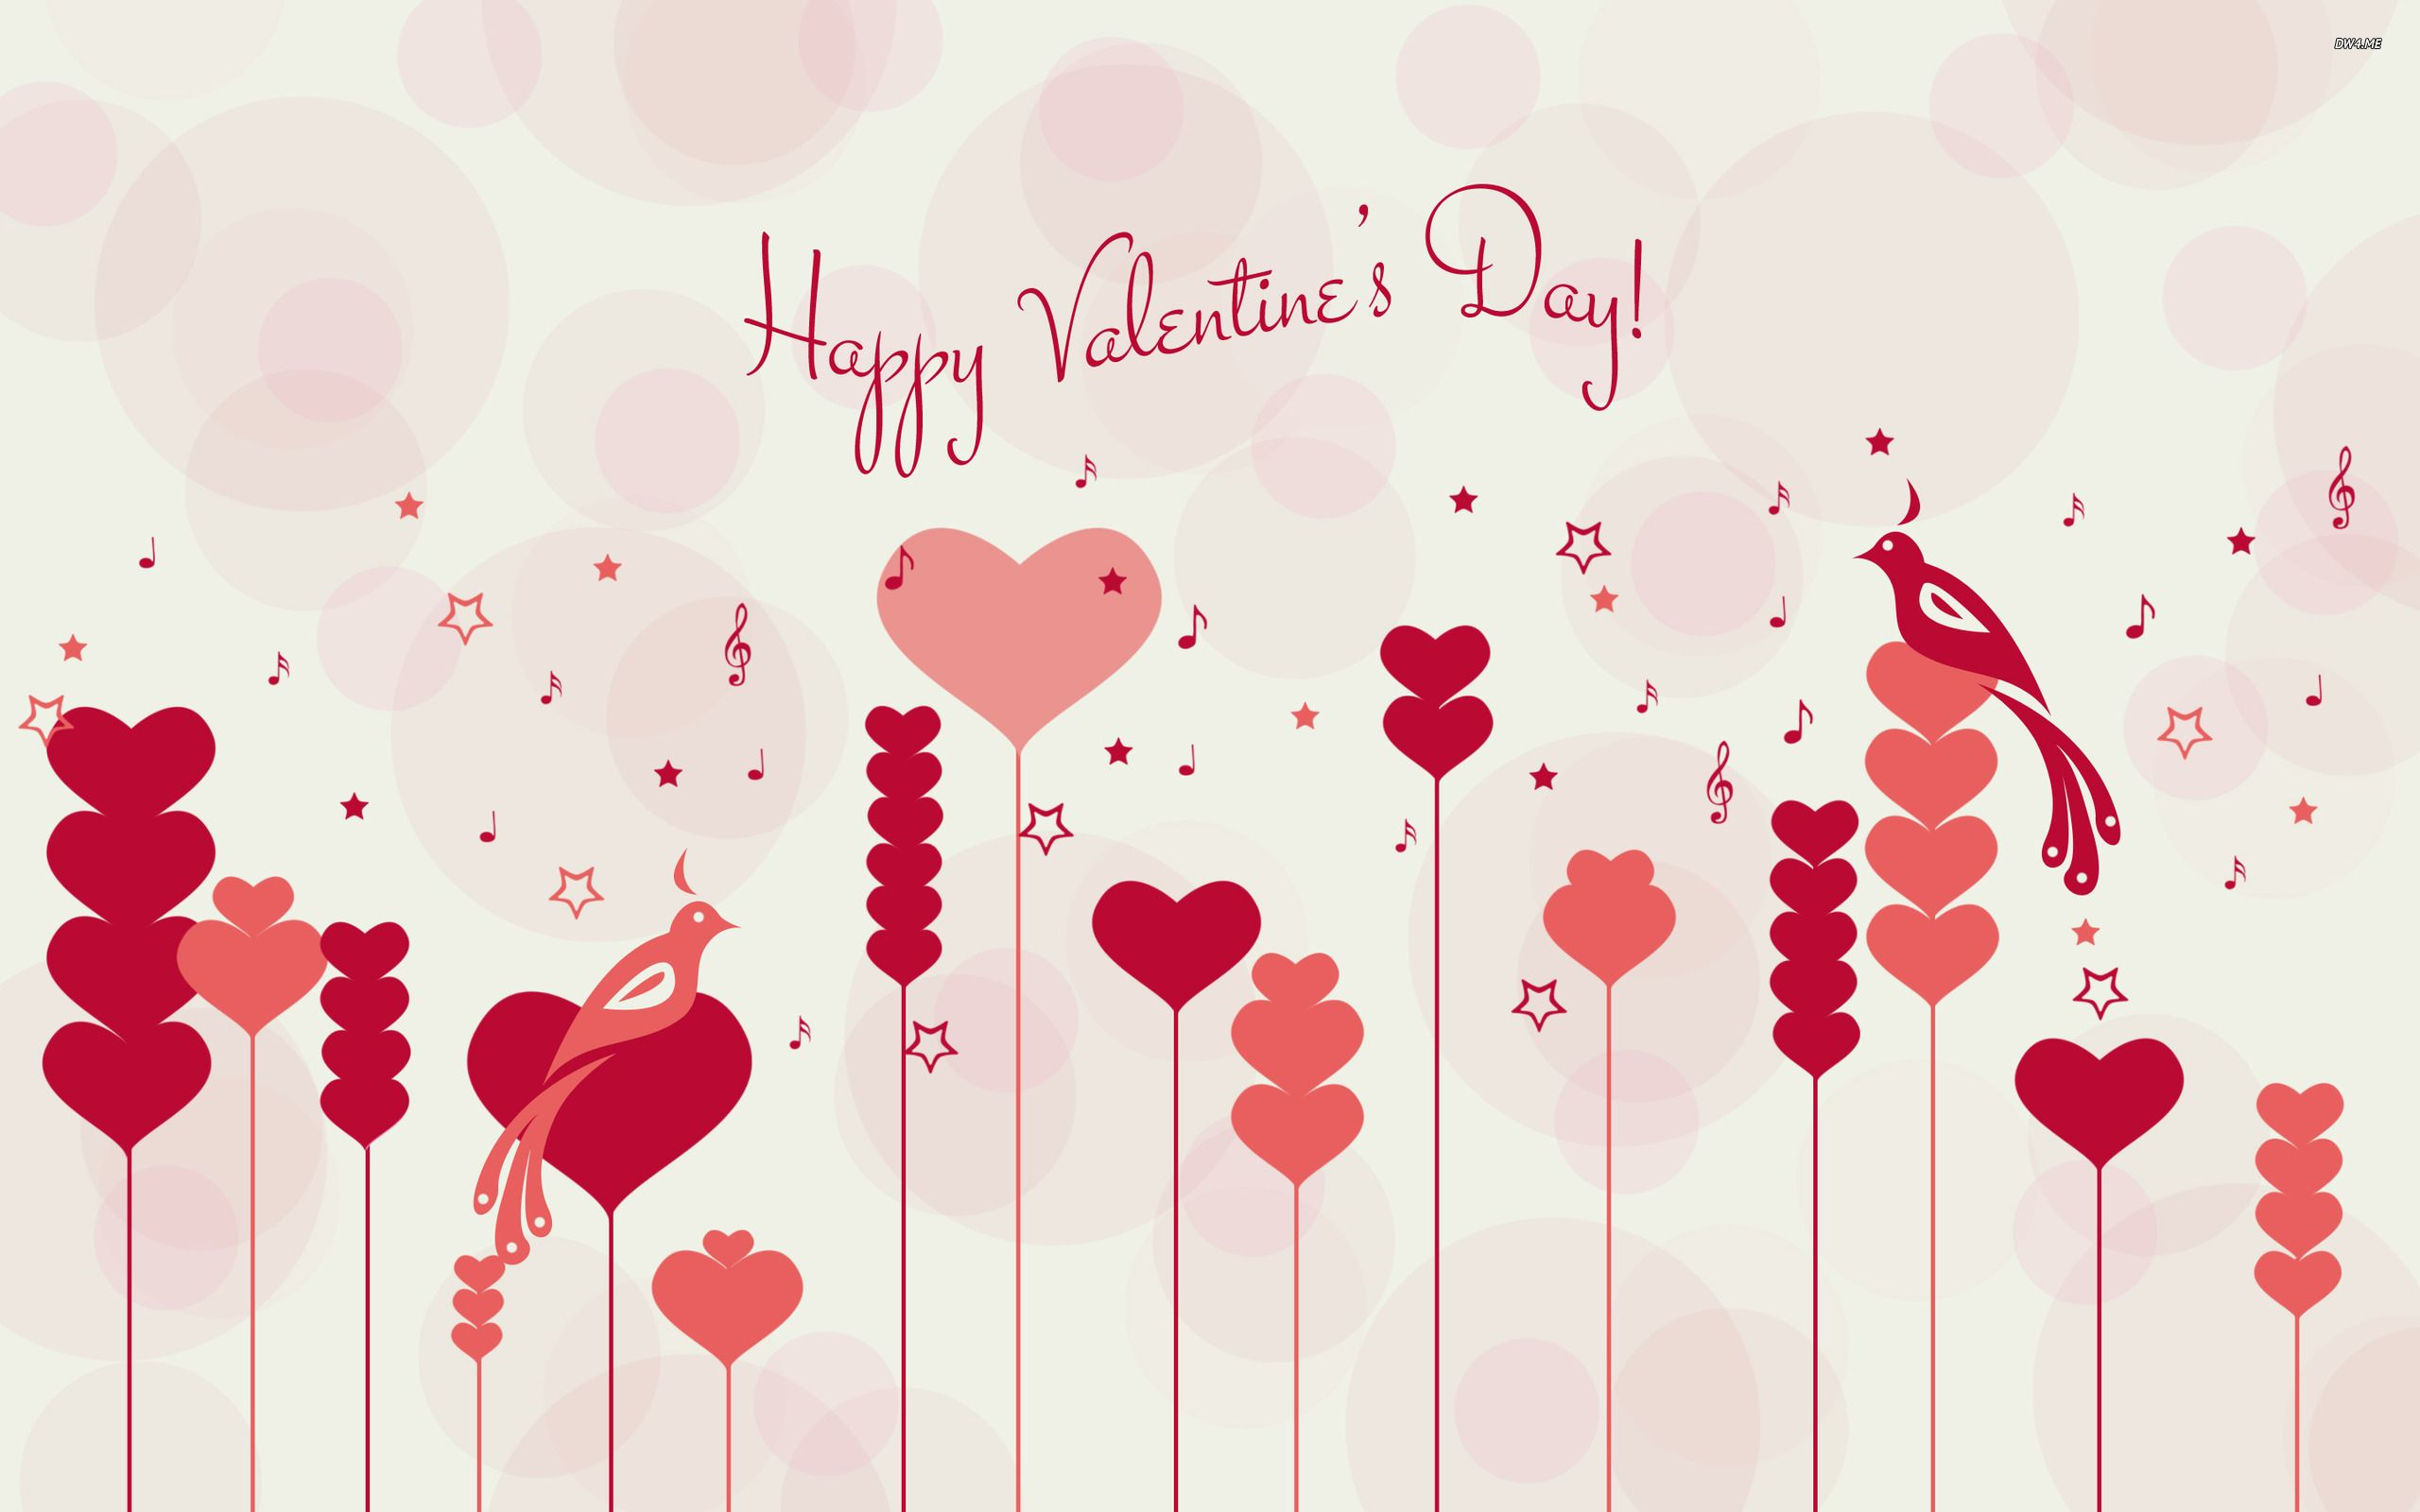 Happy Valentine's Day wallpaper - Holiday wallpapers ...